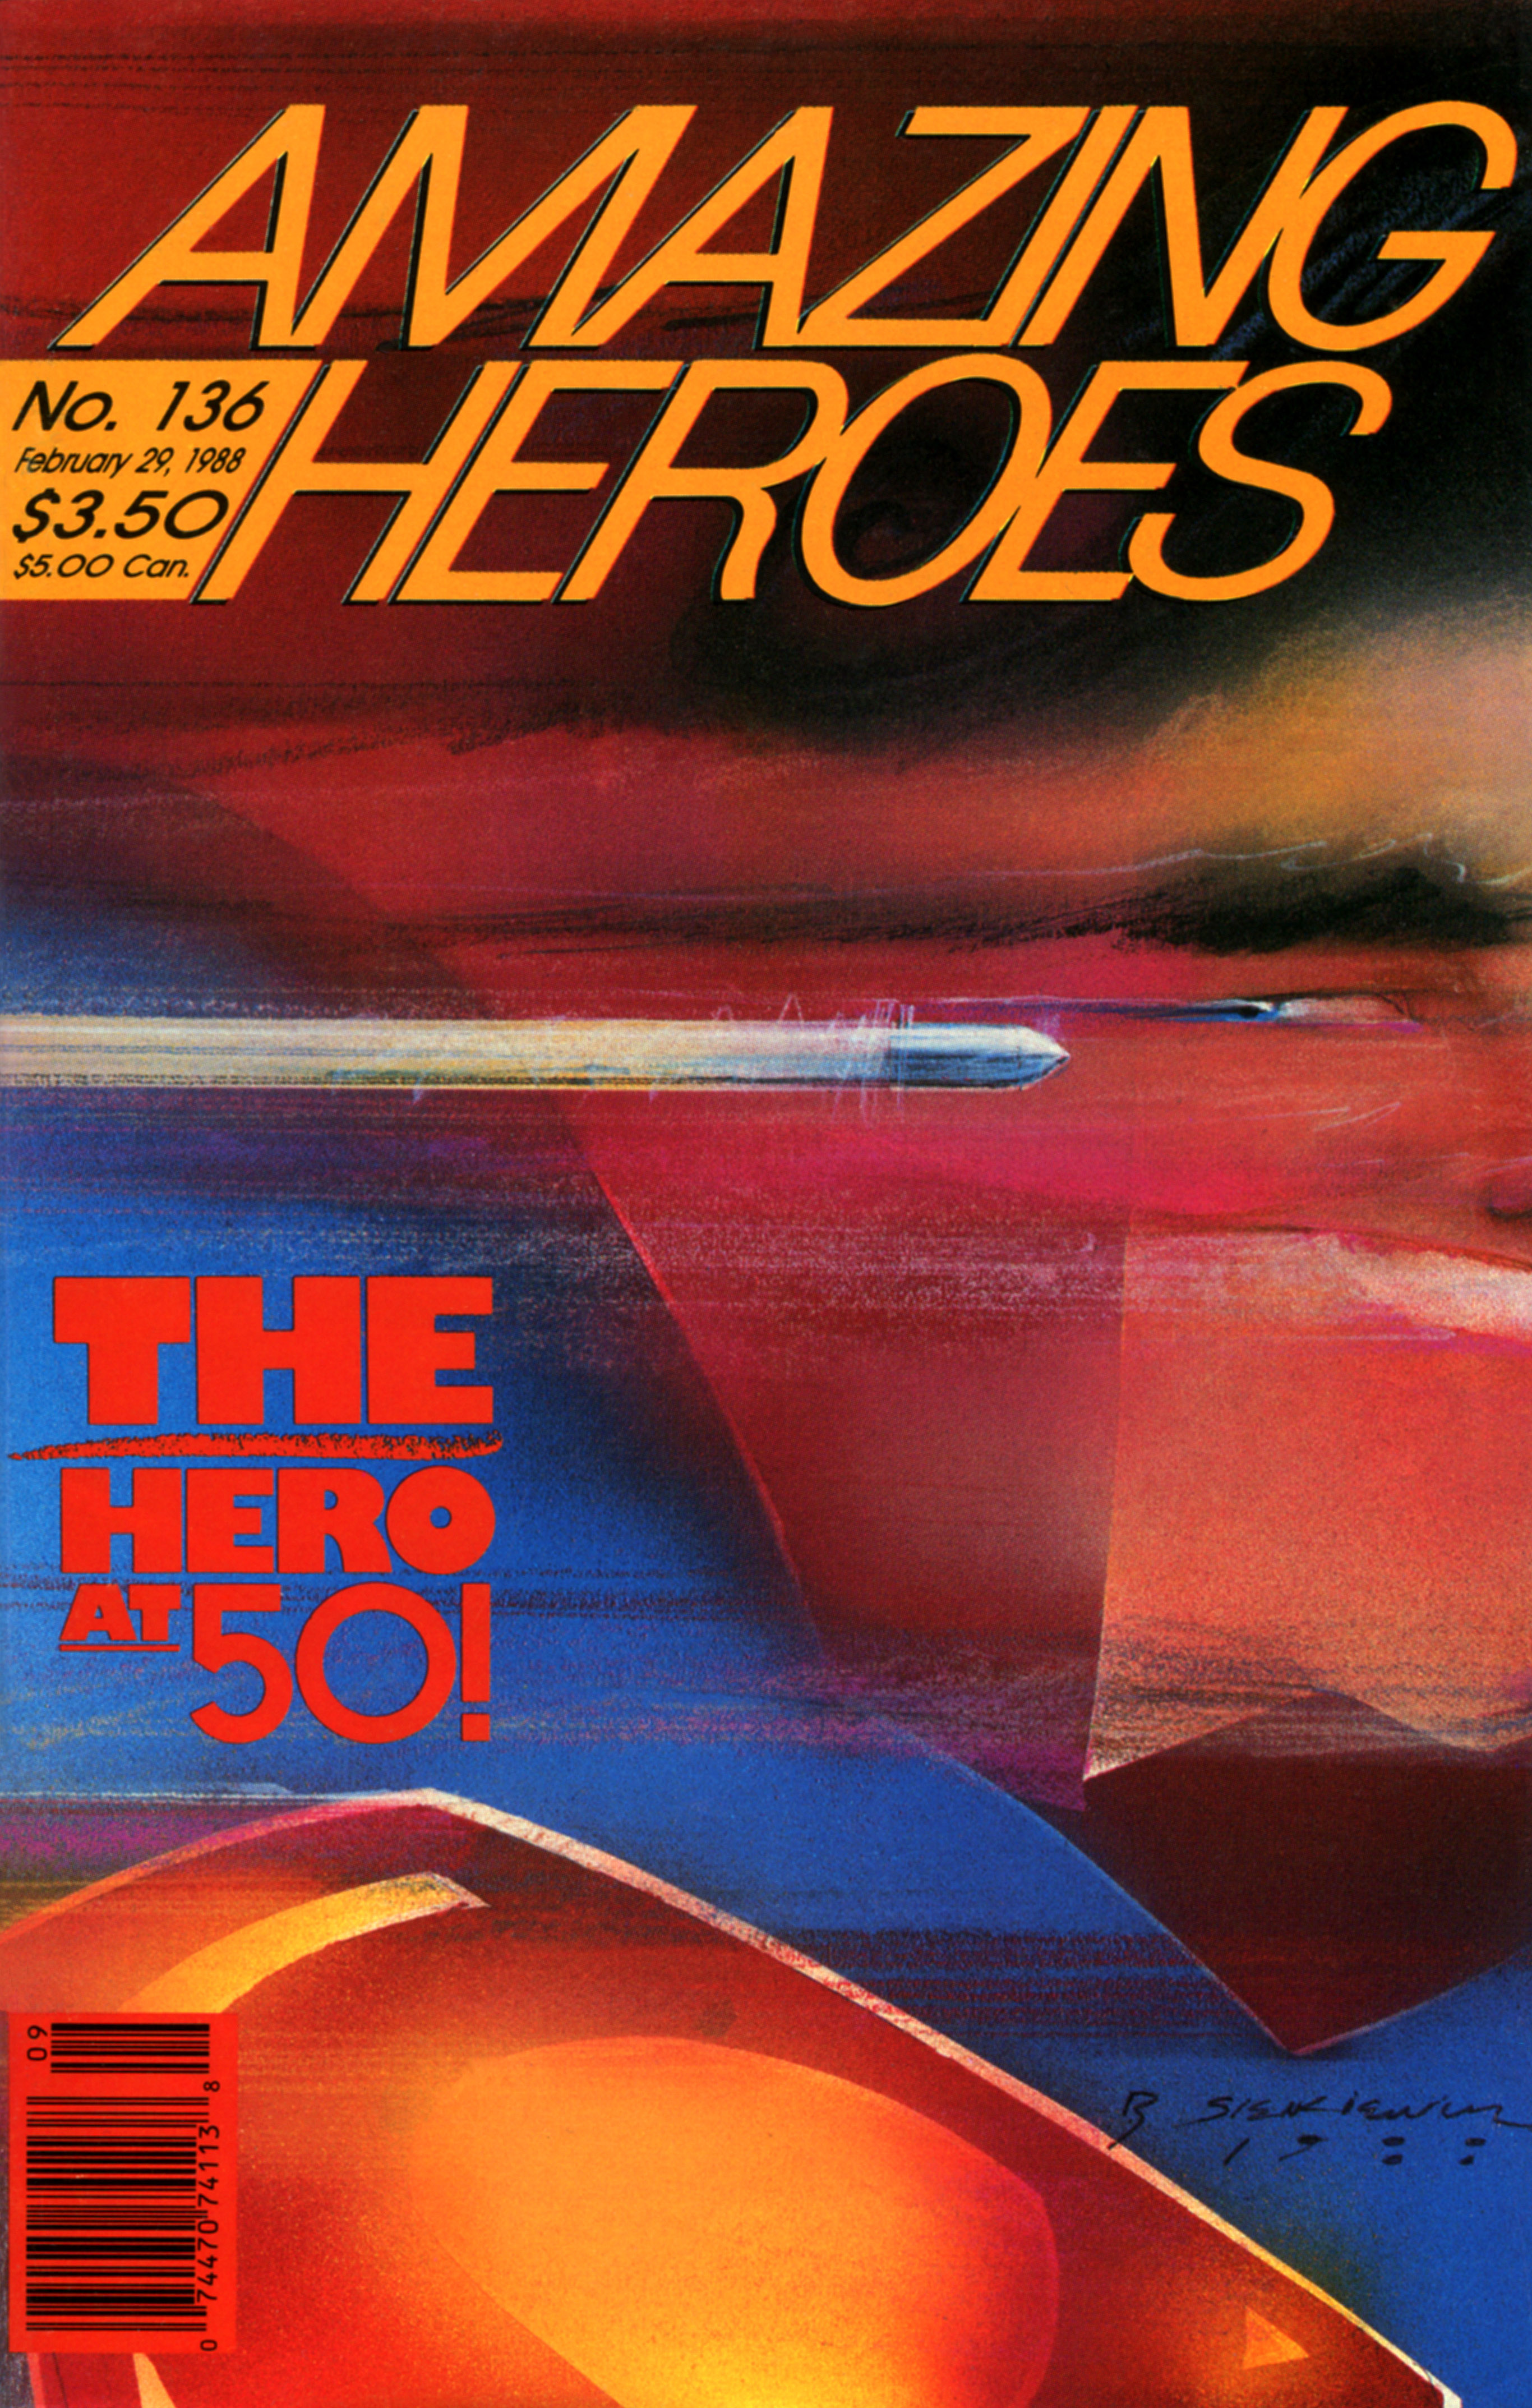 Read online Amazing Heroes comic -  Issue #136 - 1